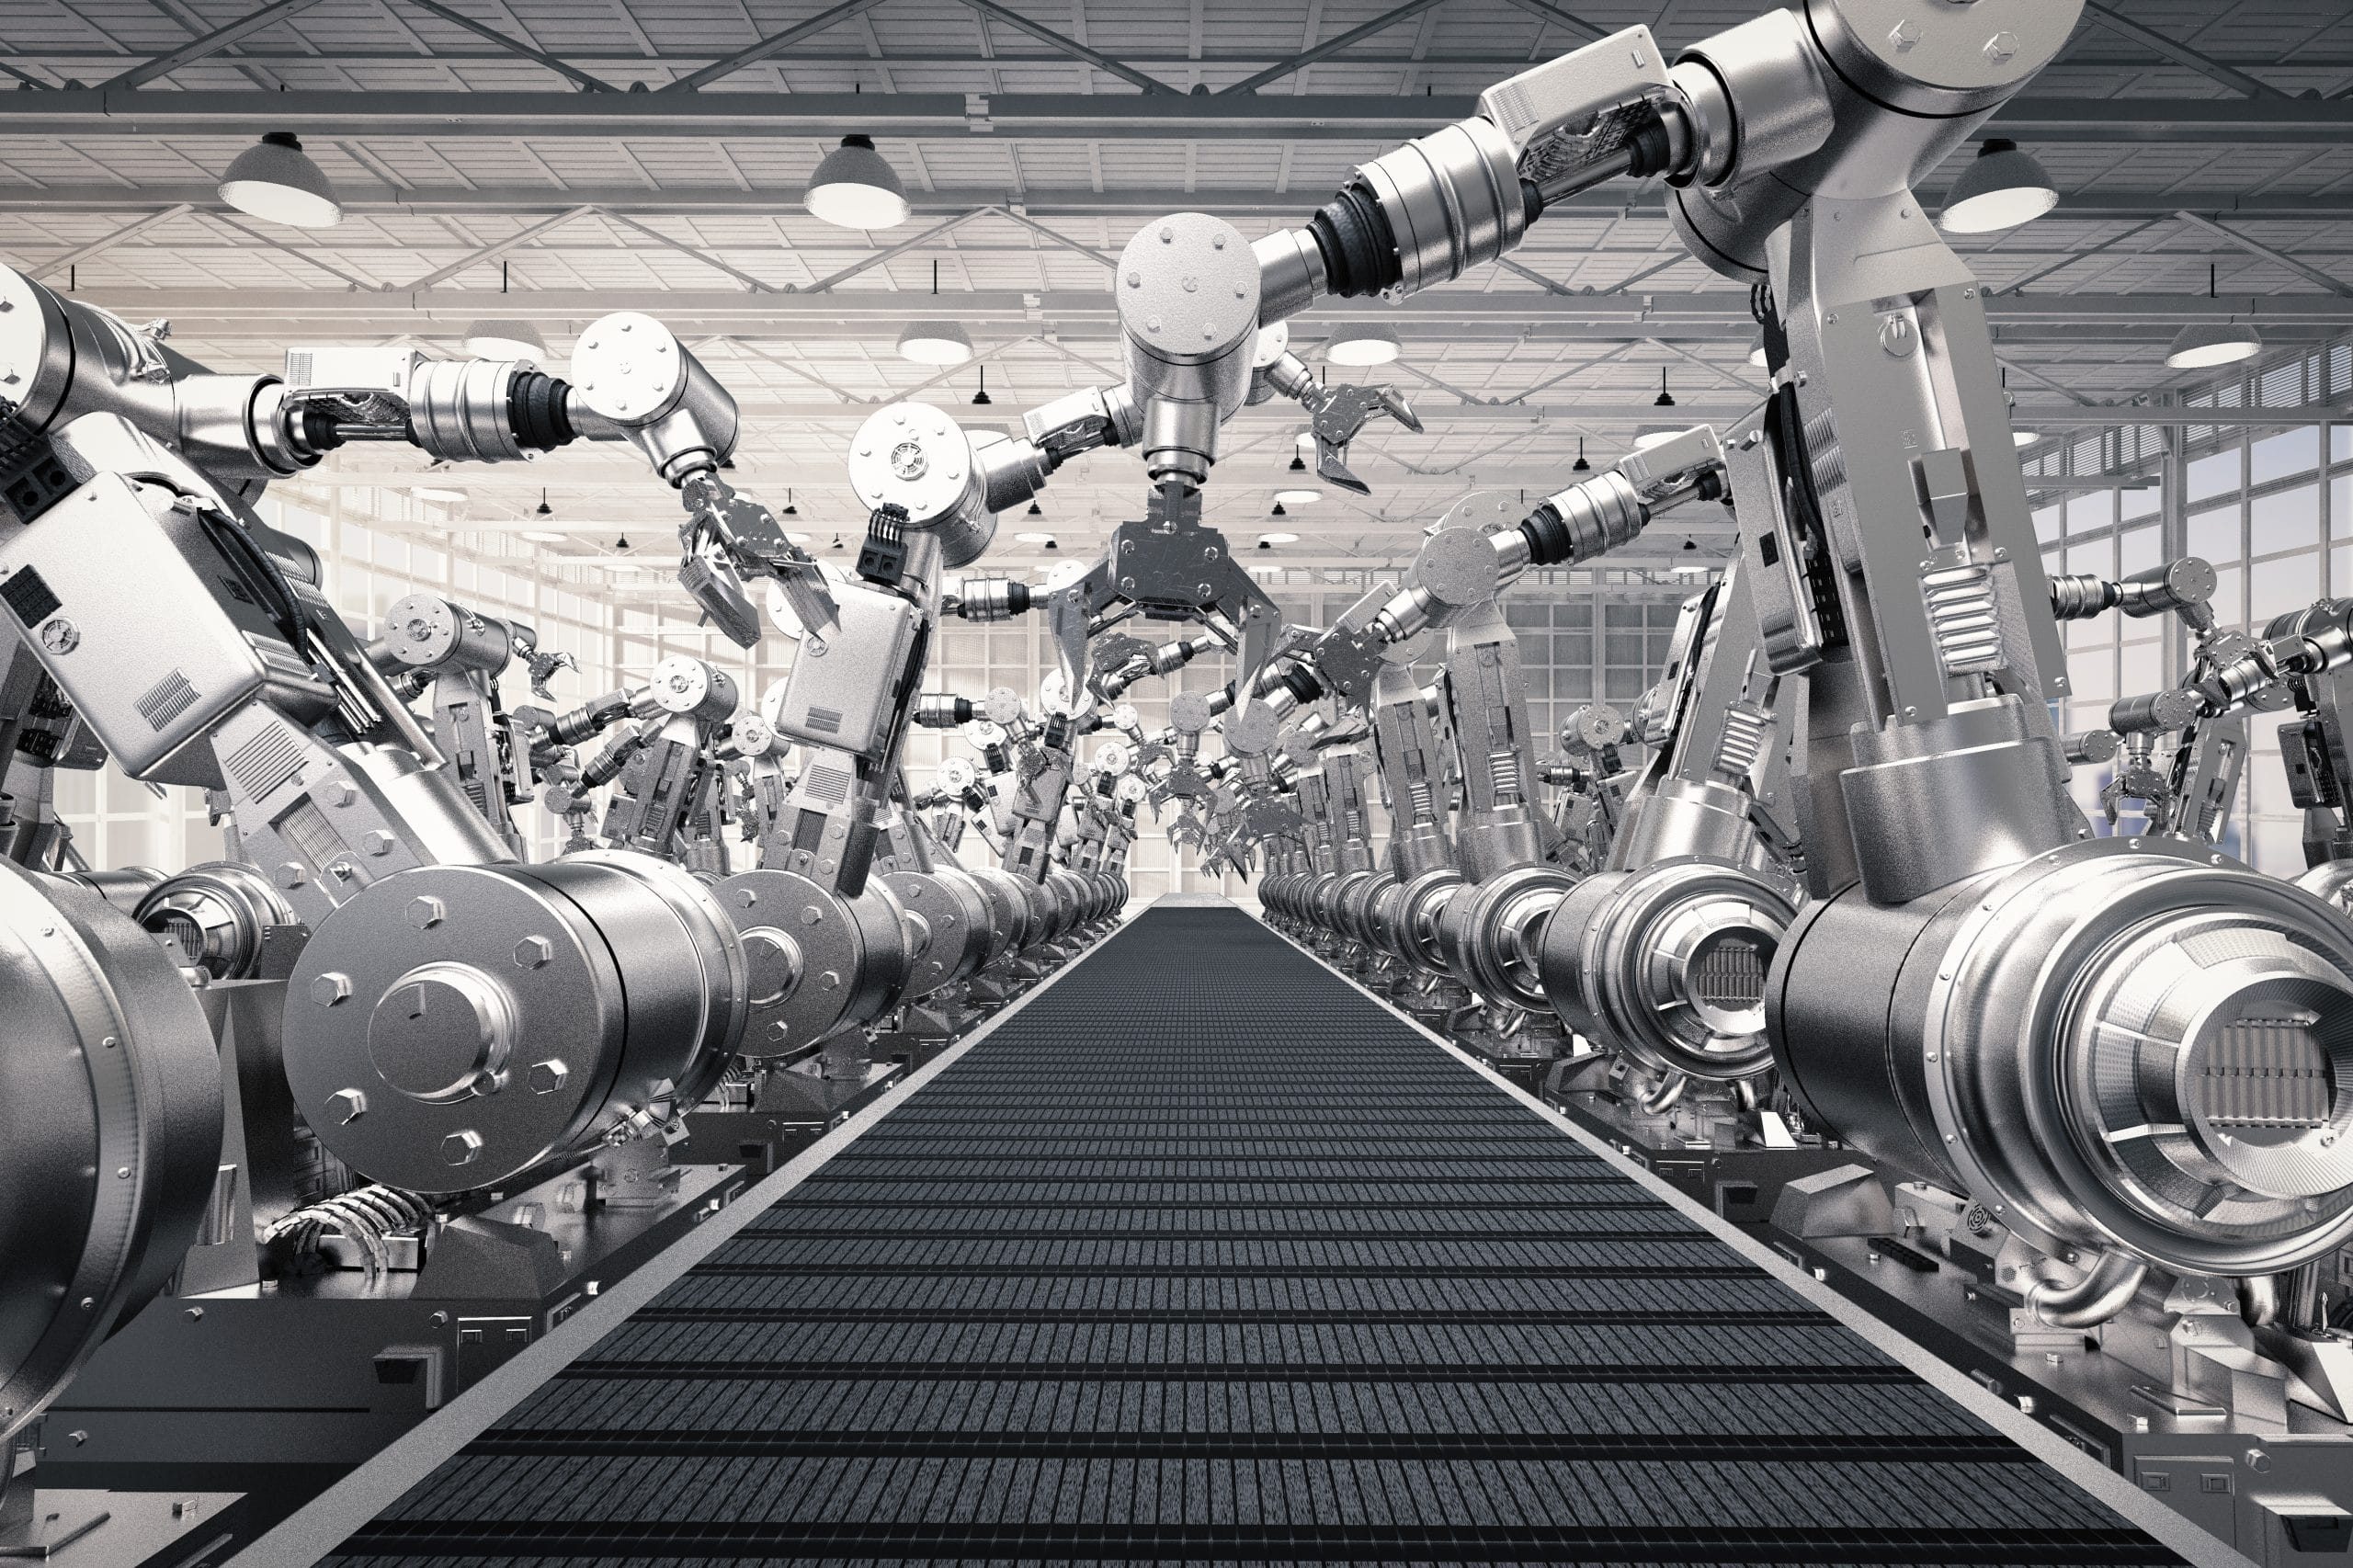 Combining 3D Printing and Robotics to Create Smart Factories